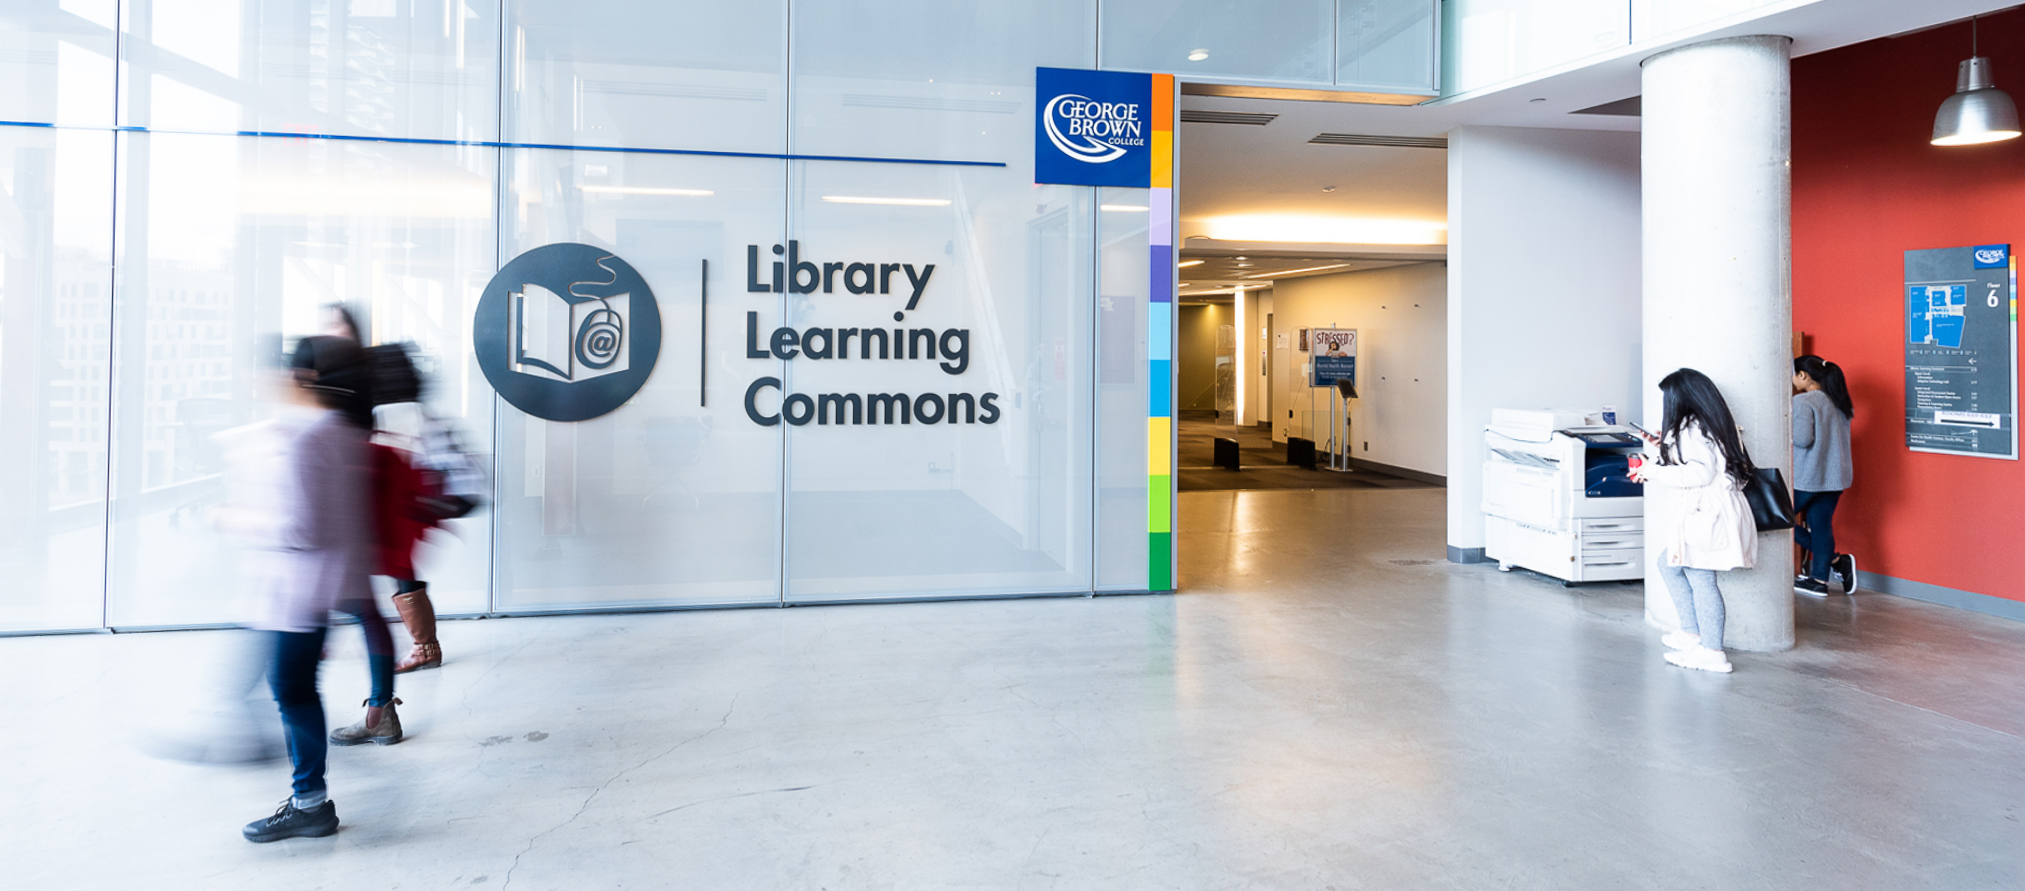 The entrance to the Waterfront LLC features a large translucent glass wall bearing the Library Learning Commons logo of a book and computer mouse with the @ on it. The GBC logo and colour-bar frames the doorway into the library. Several people walk by the entrance in motion blur, and a couple other students stand next to the printer outside the library.